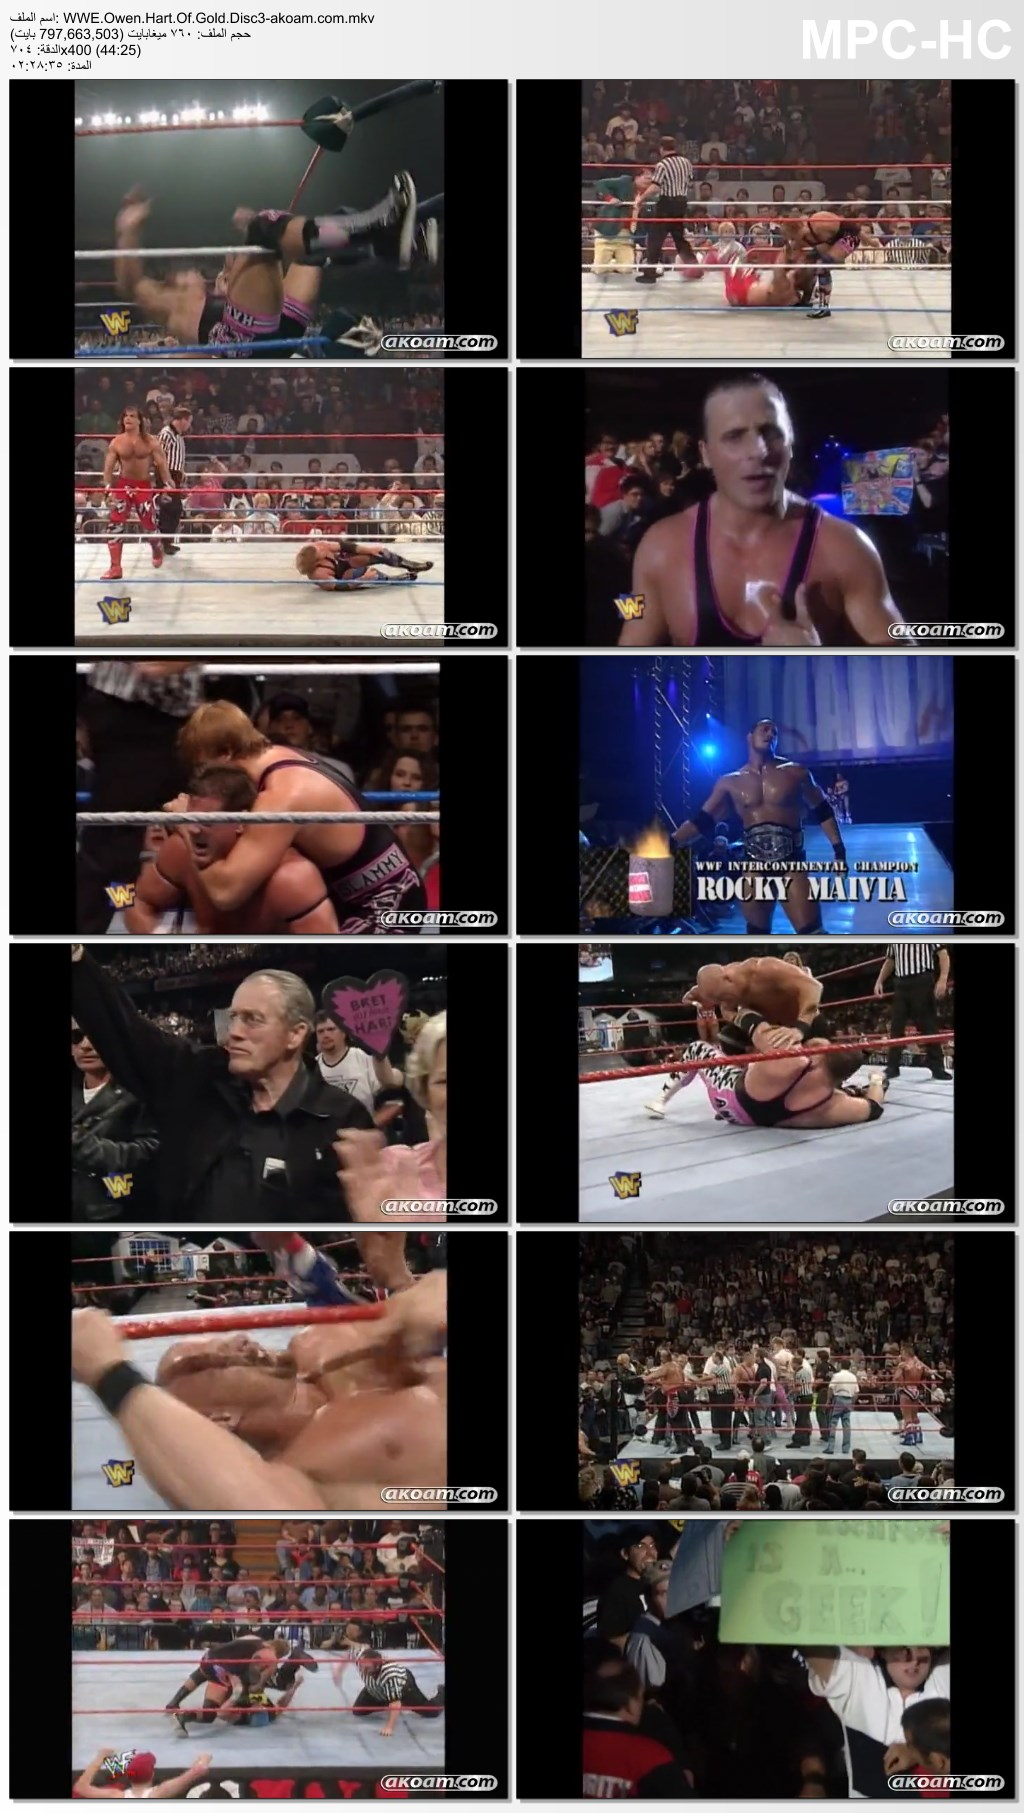 WWE Owen Hart Of Gold,Owen,Hart,Gold,المصارعة,الحرة,WWE,أوين هارت